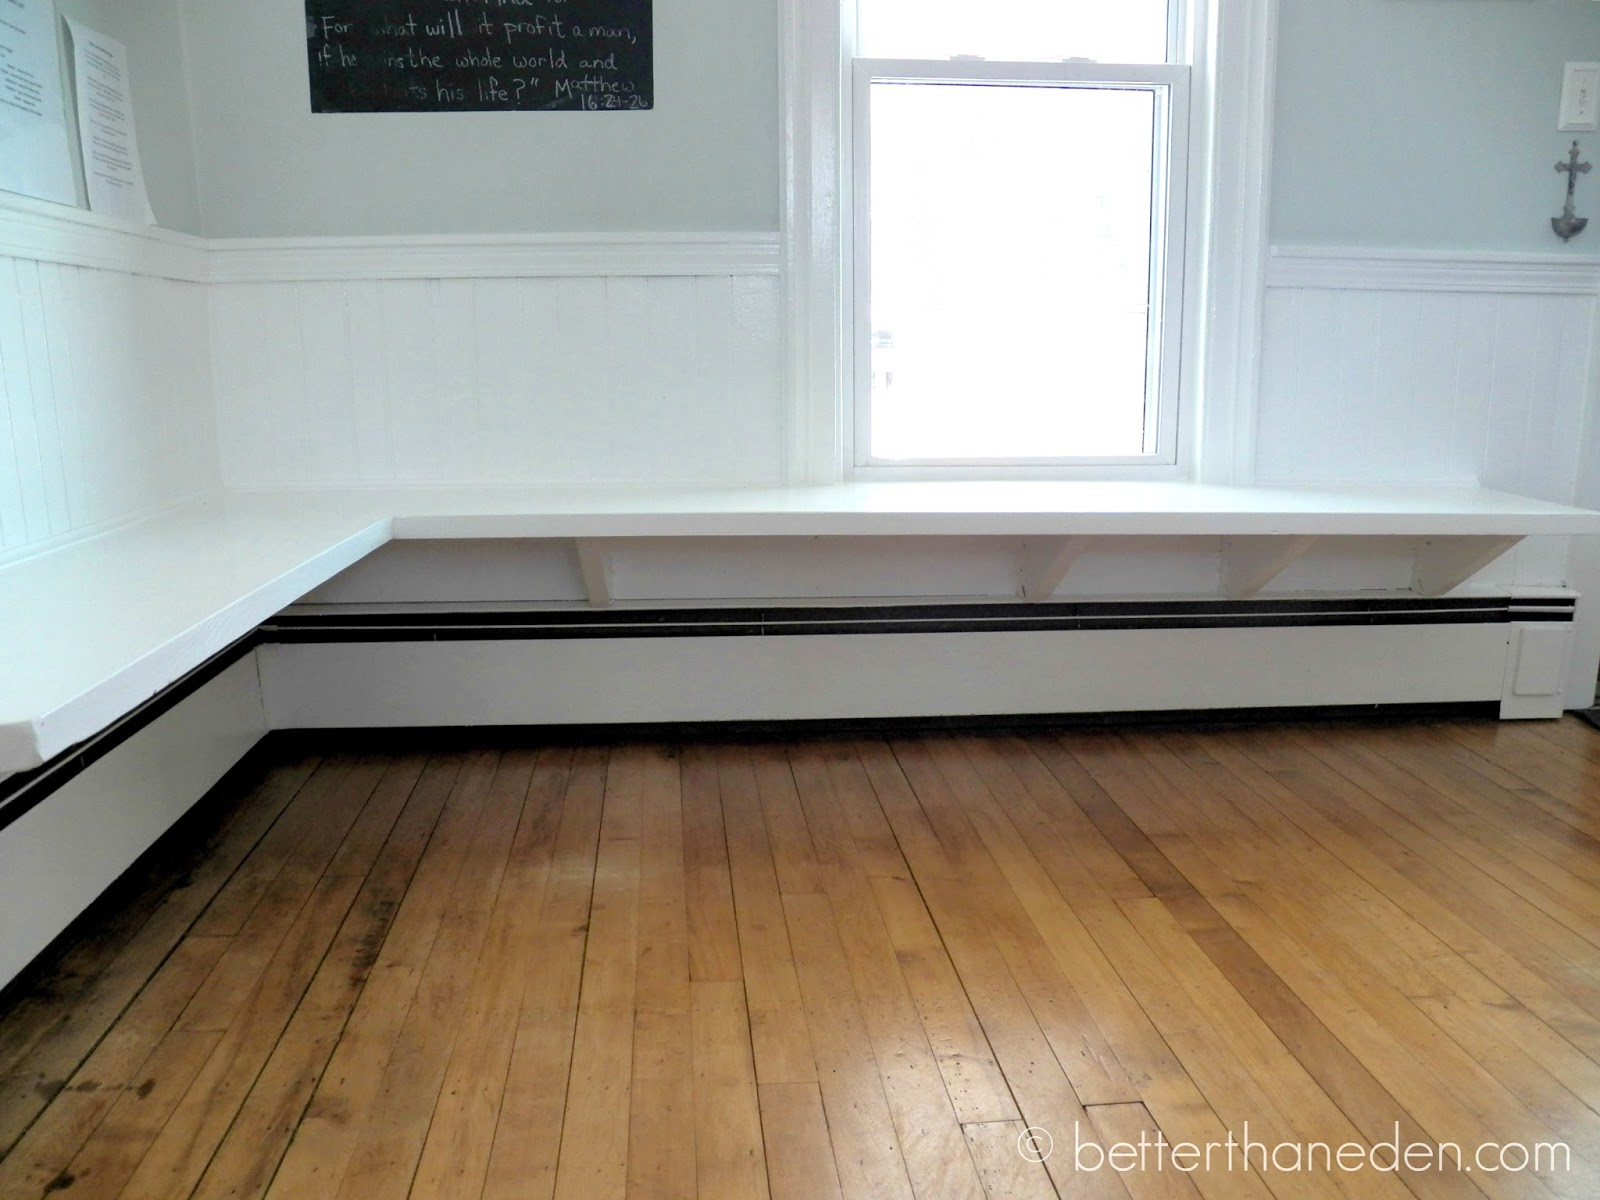 The Floating Built-In Kitchen Bench - Mary Haseltine